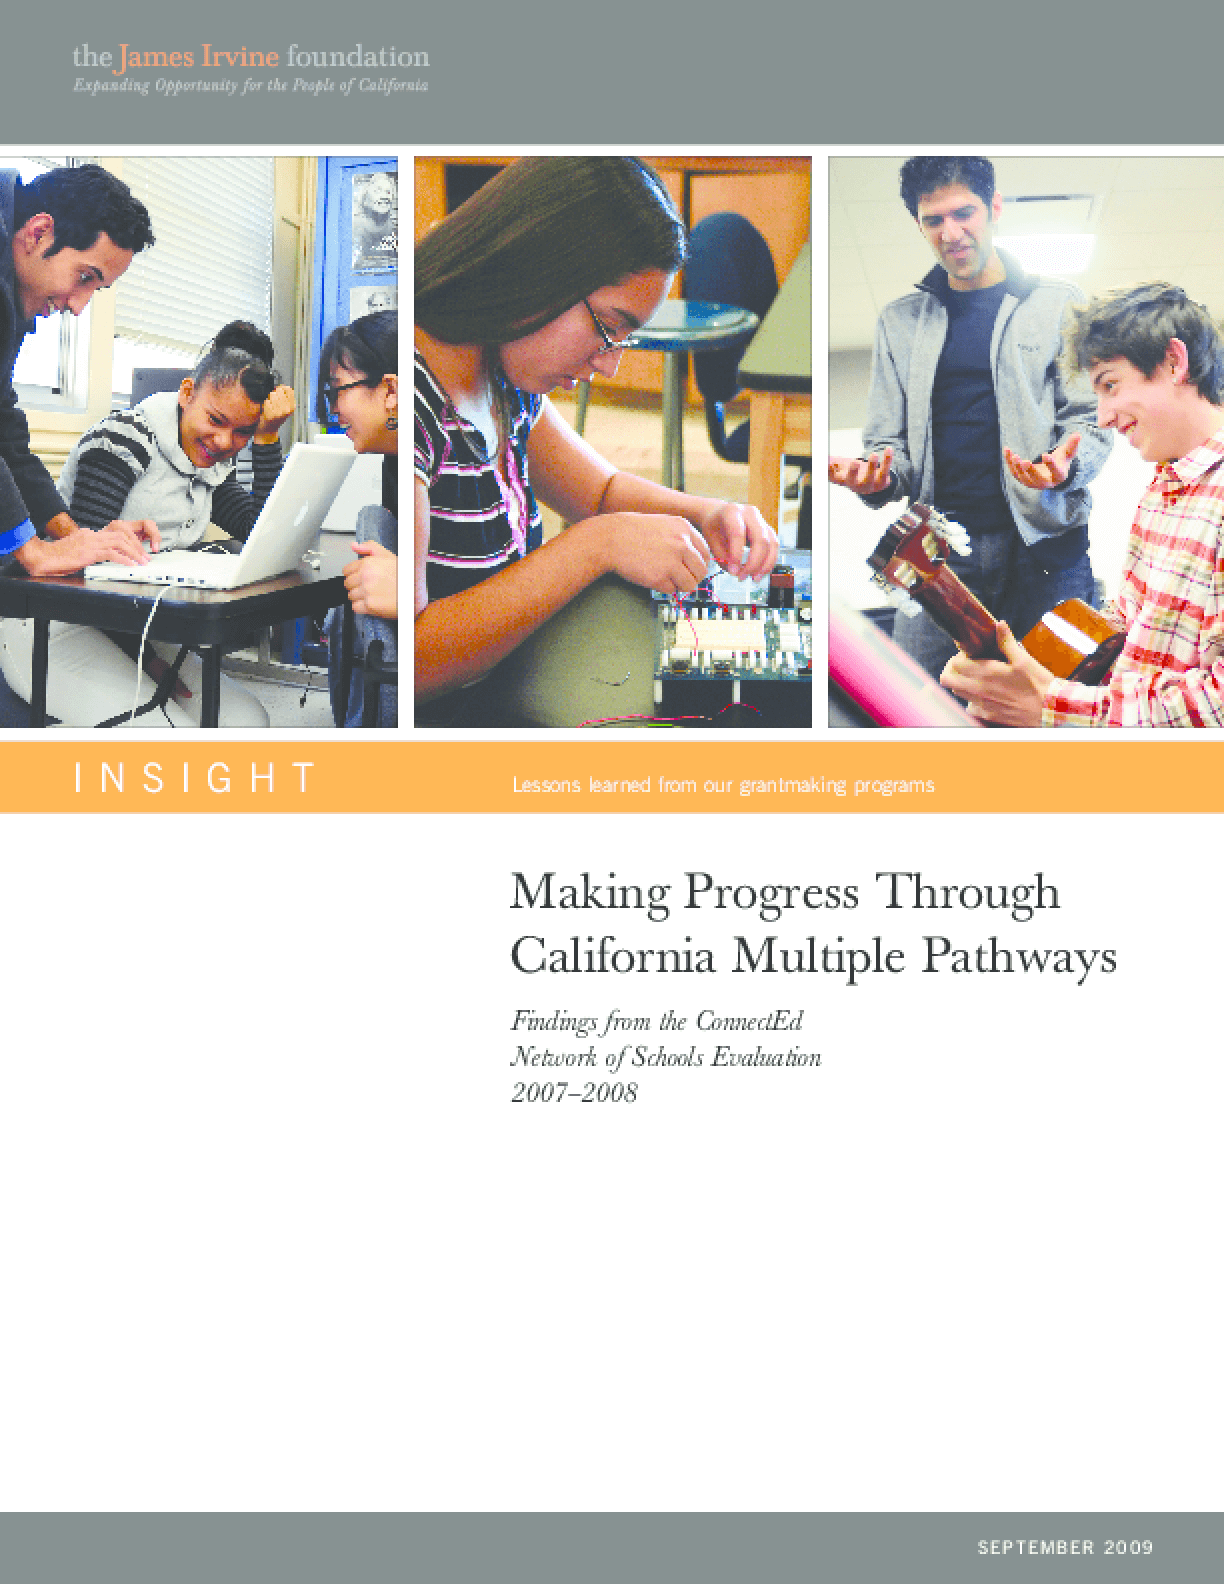 Making Progress Through California Multiple Pathways: Findings from the ConnectEd Network of Schools Evaluation, 2007-2008